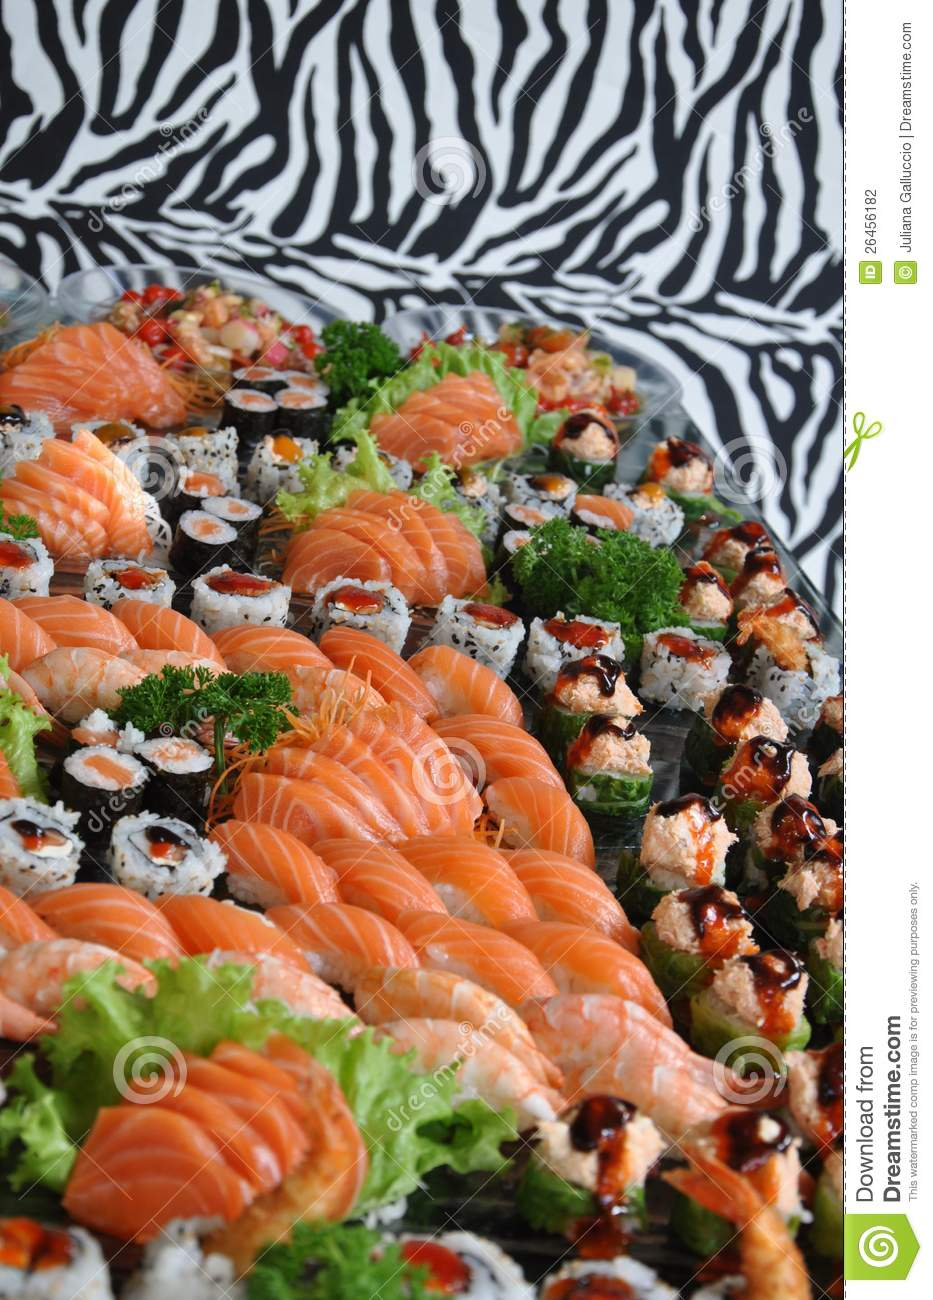 Sushi and raw fish platter stock photography image 26456182 for Is sushi raw fish